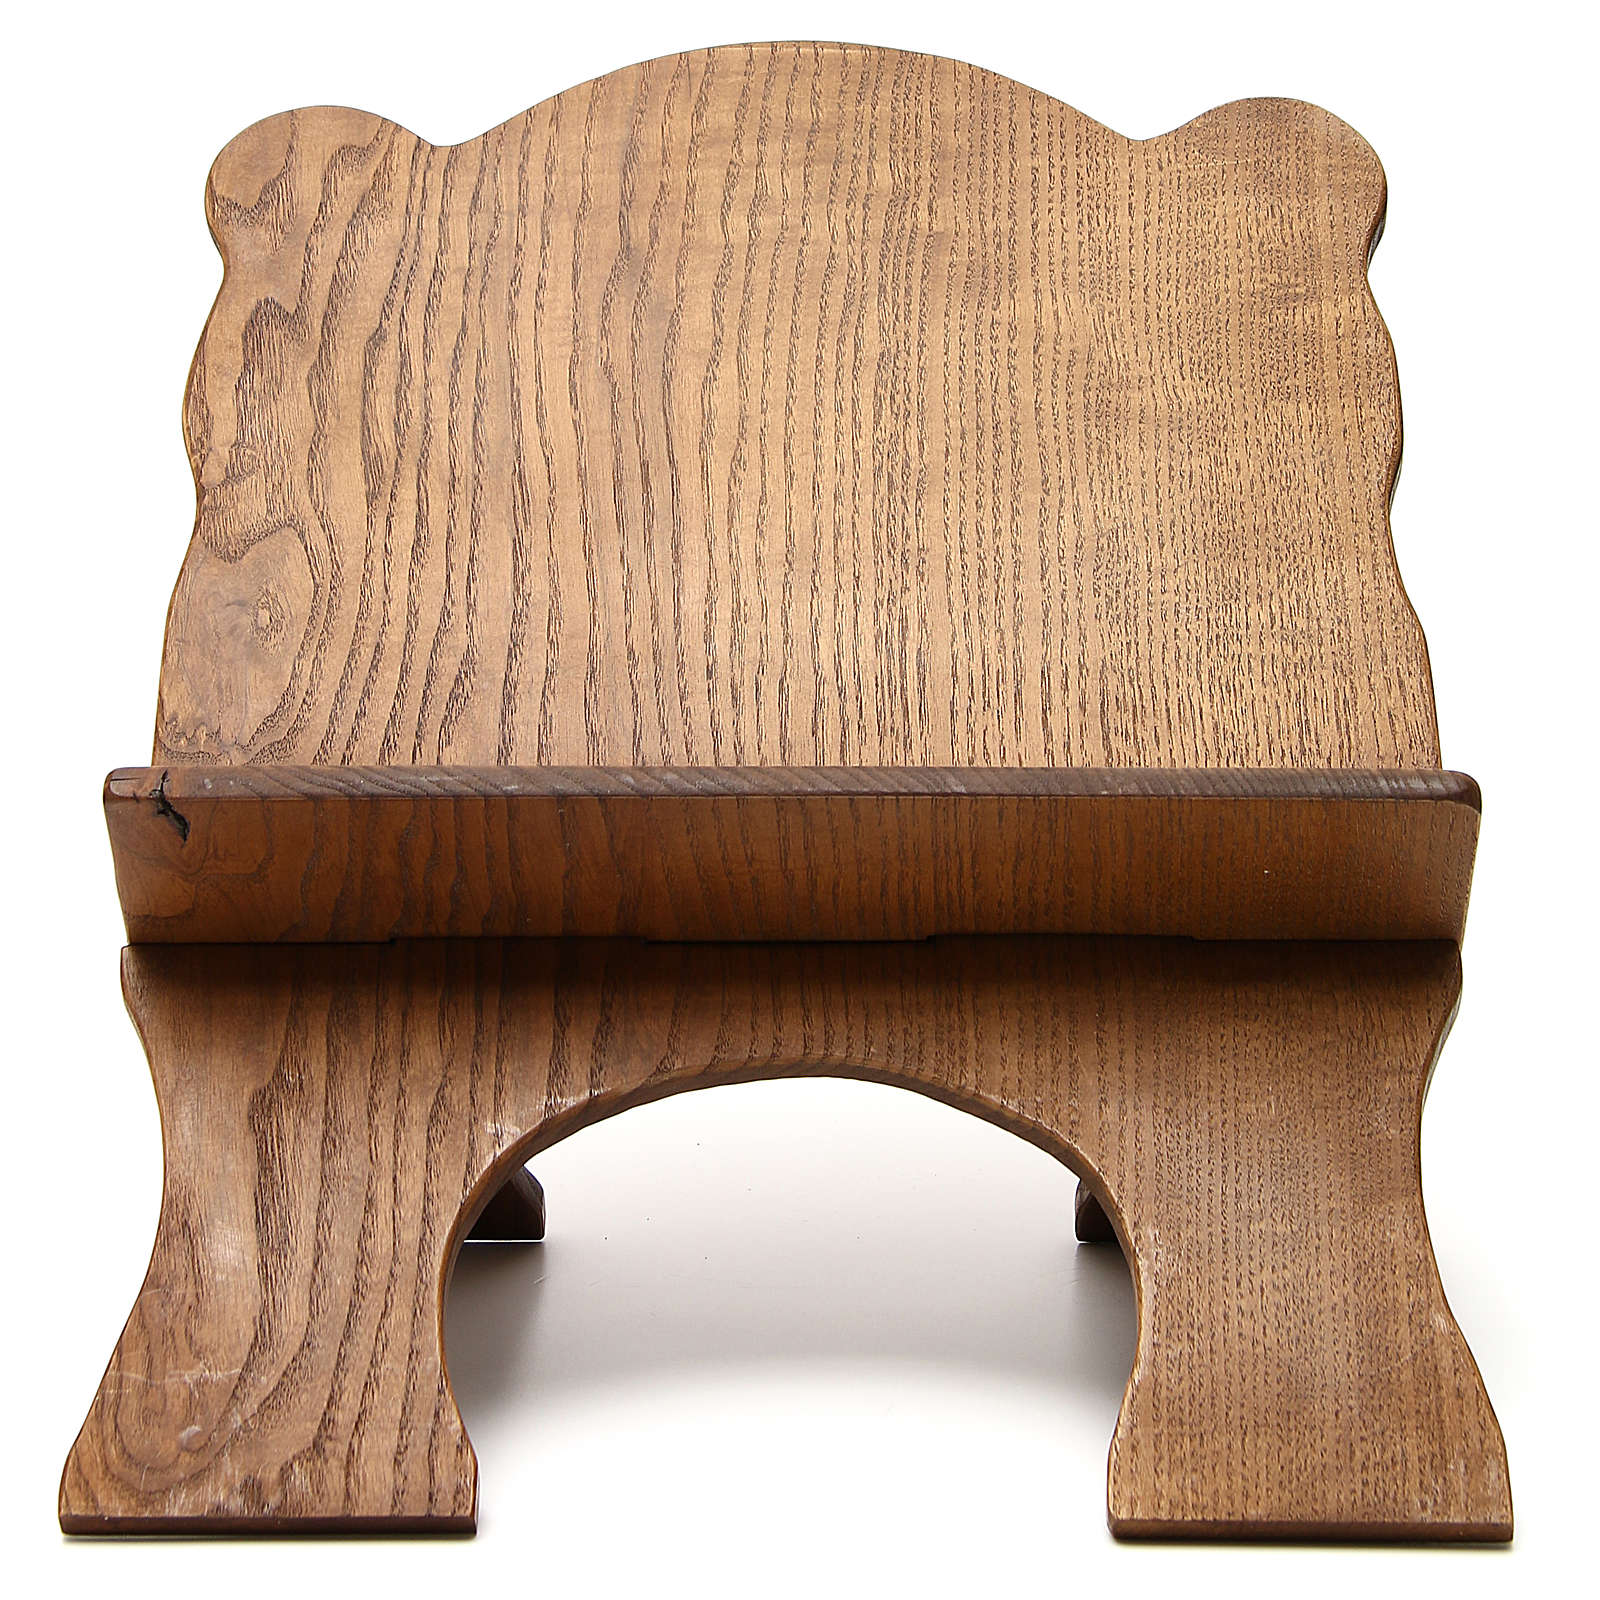 Book stand in black ash wood, simple model, hand carved by the Bethlehem monks 4